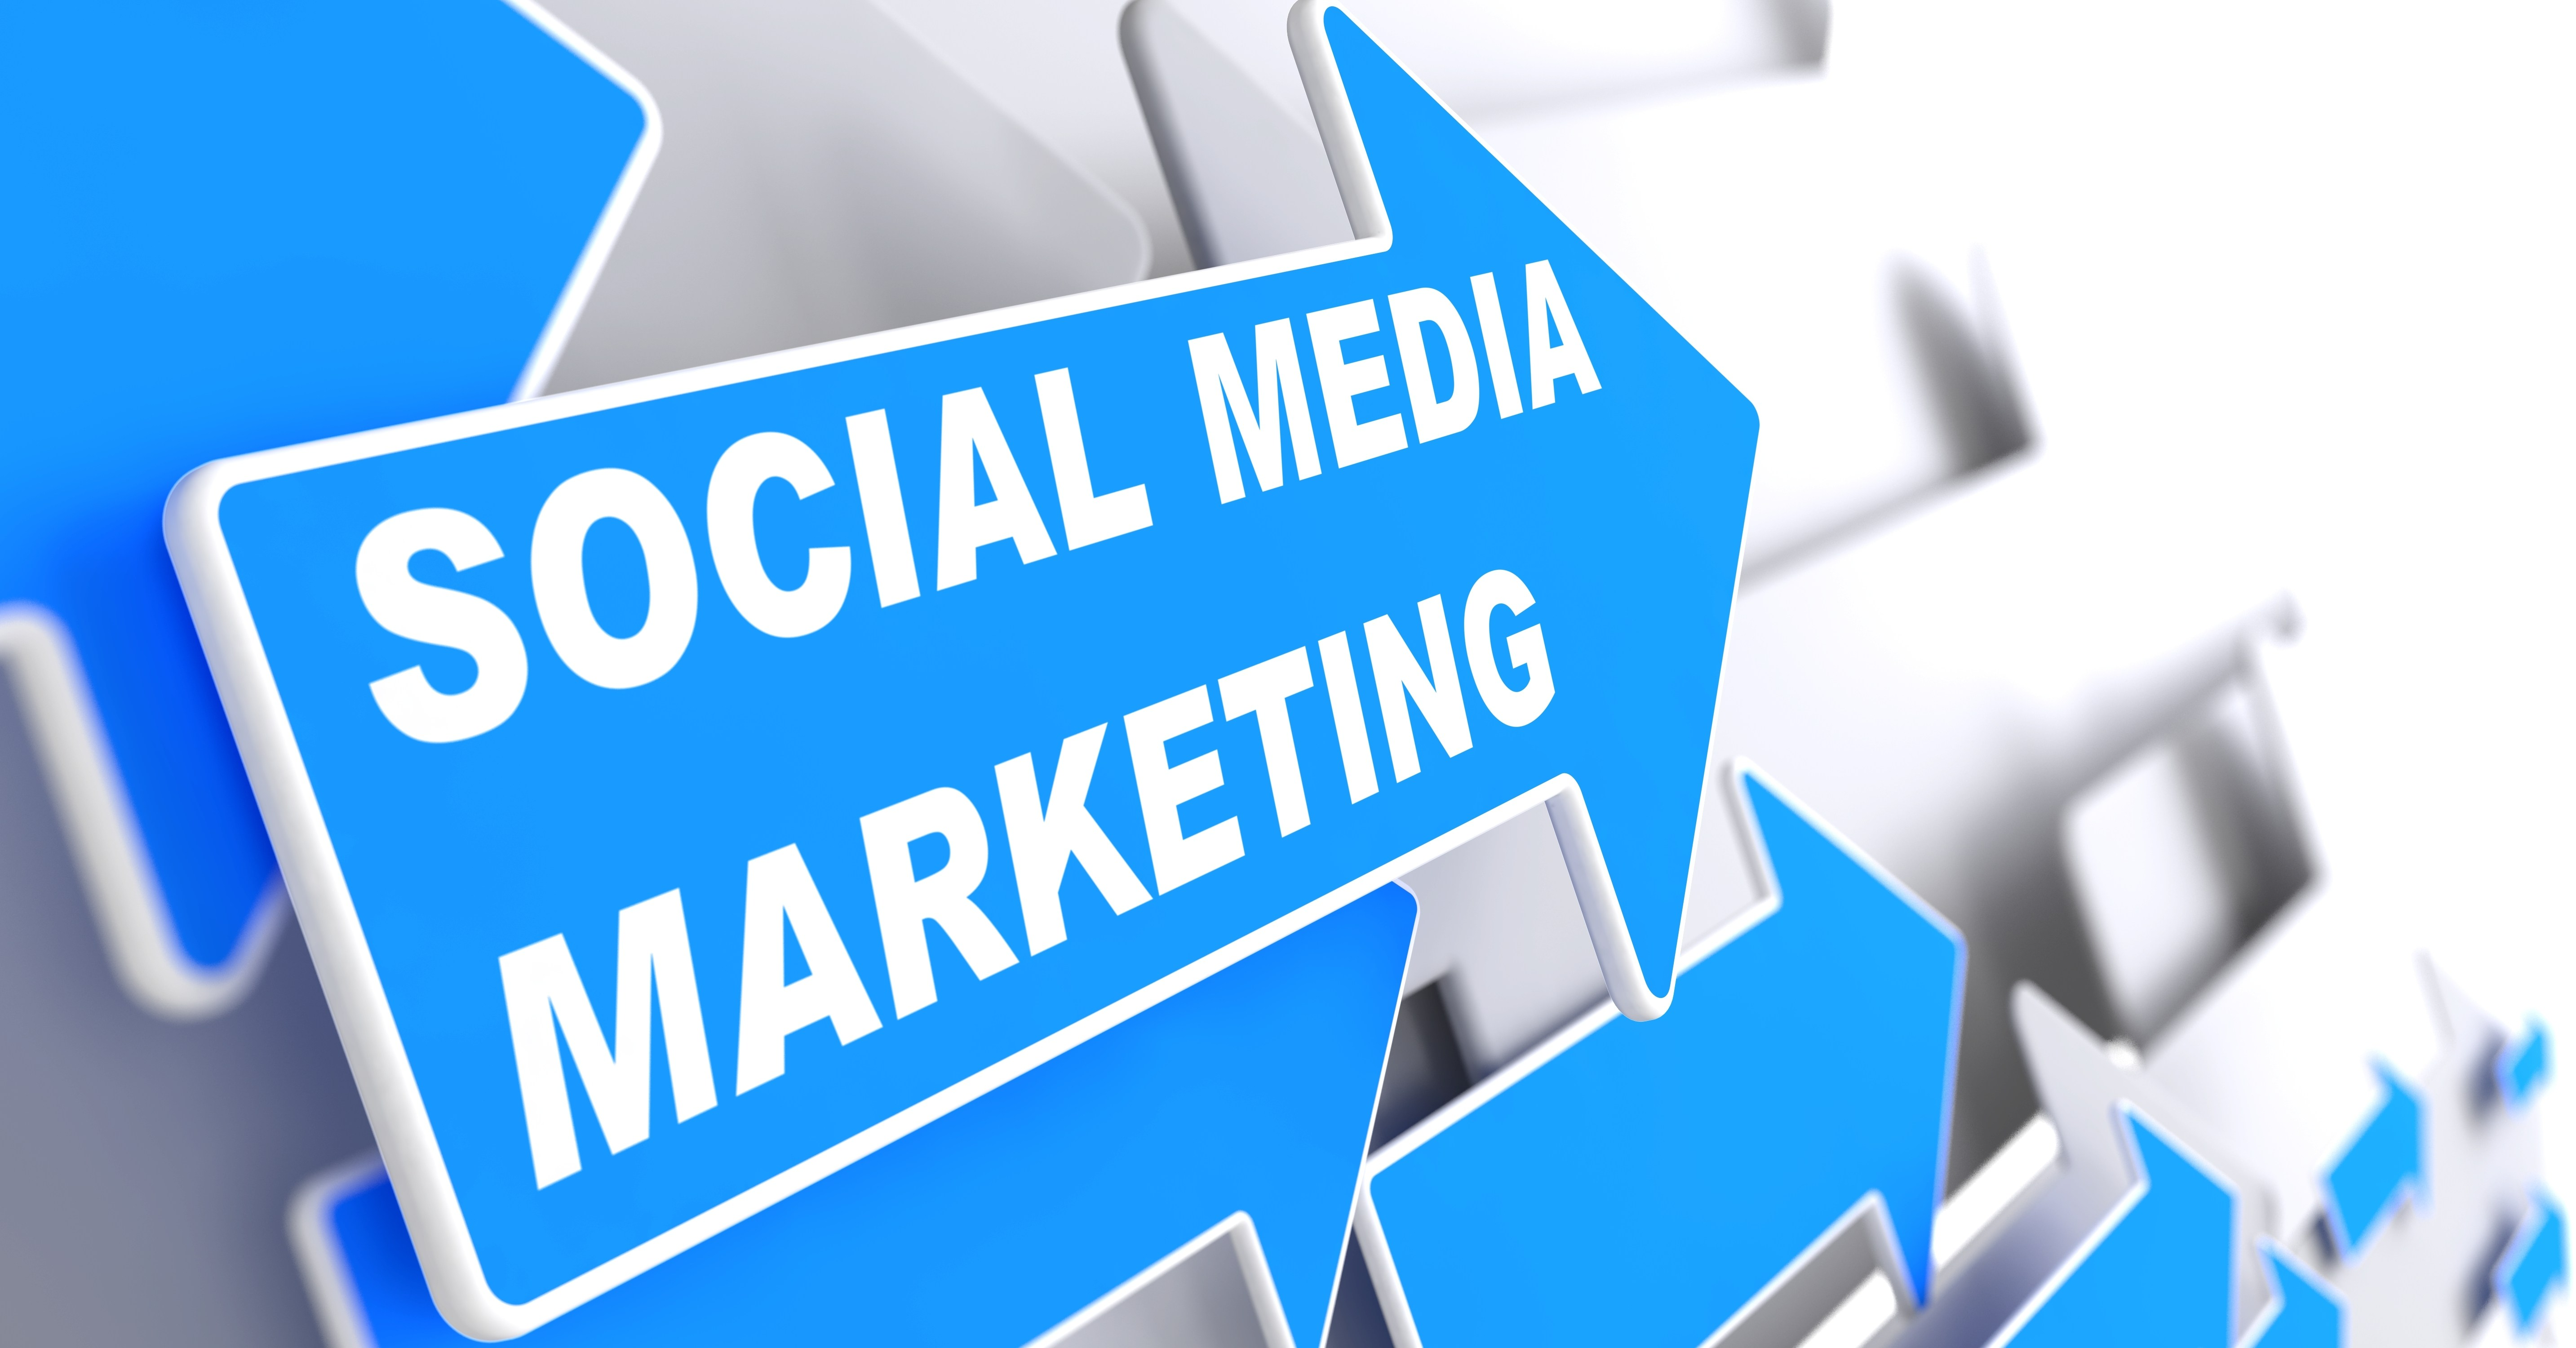 Social-Media-Marketing-ROI-A-Step-by-Step-Guide.jpg